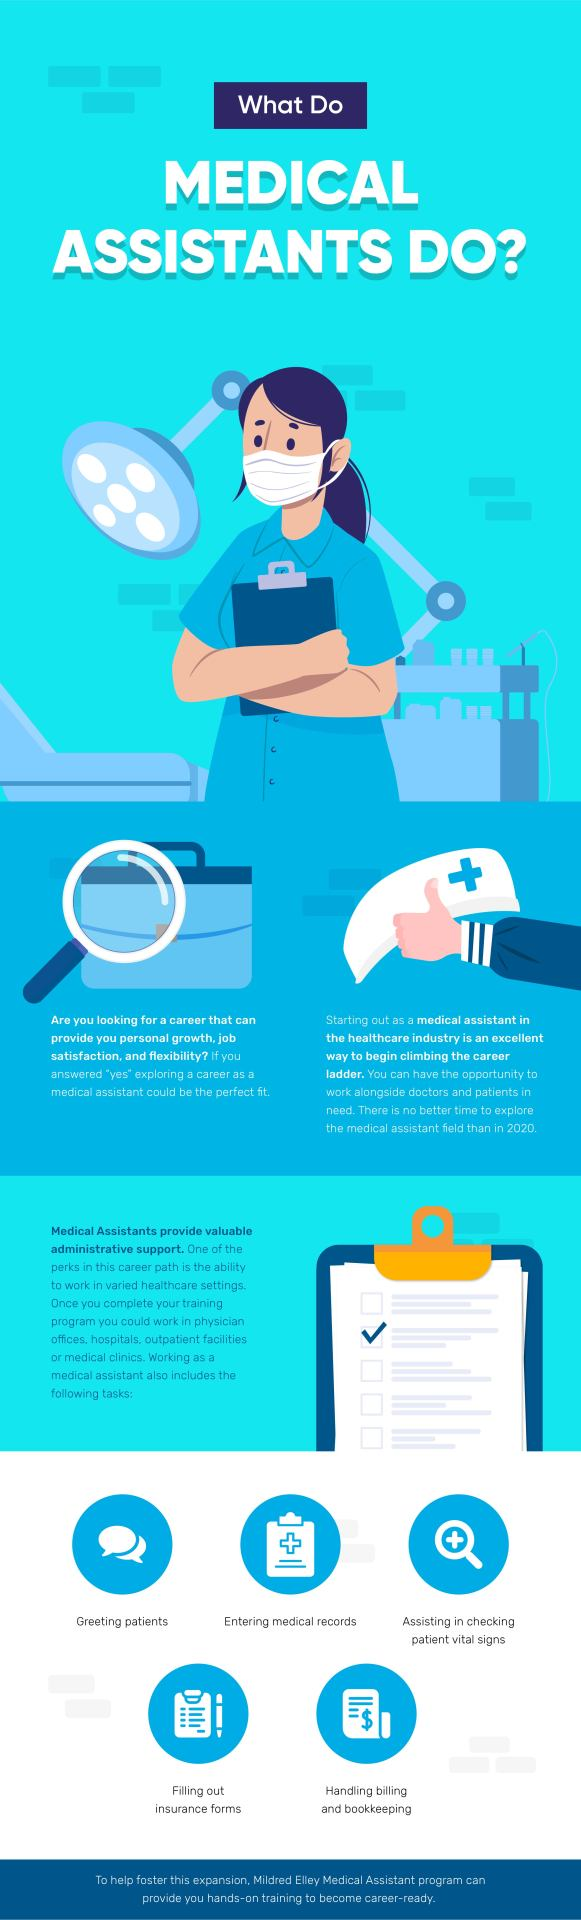 WHAT DO MEDICAL ASSISTANTS DO-infographic-plaza